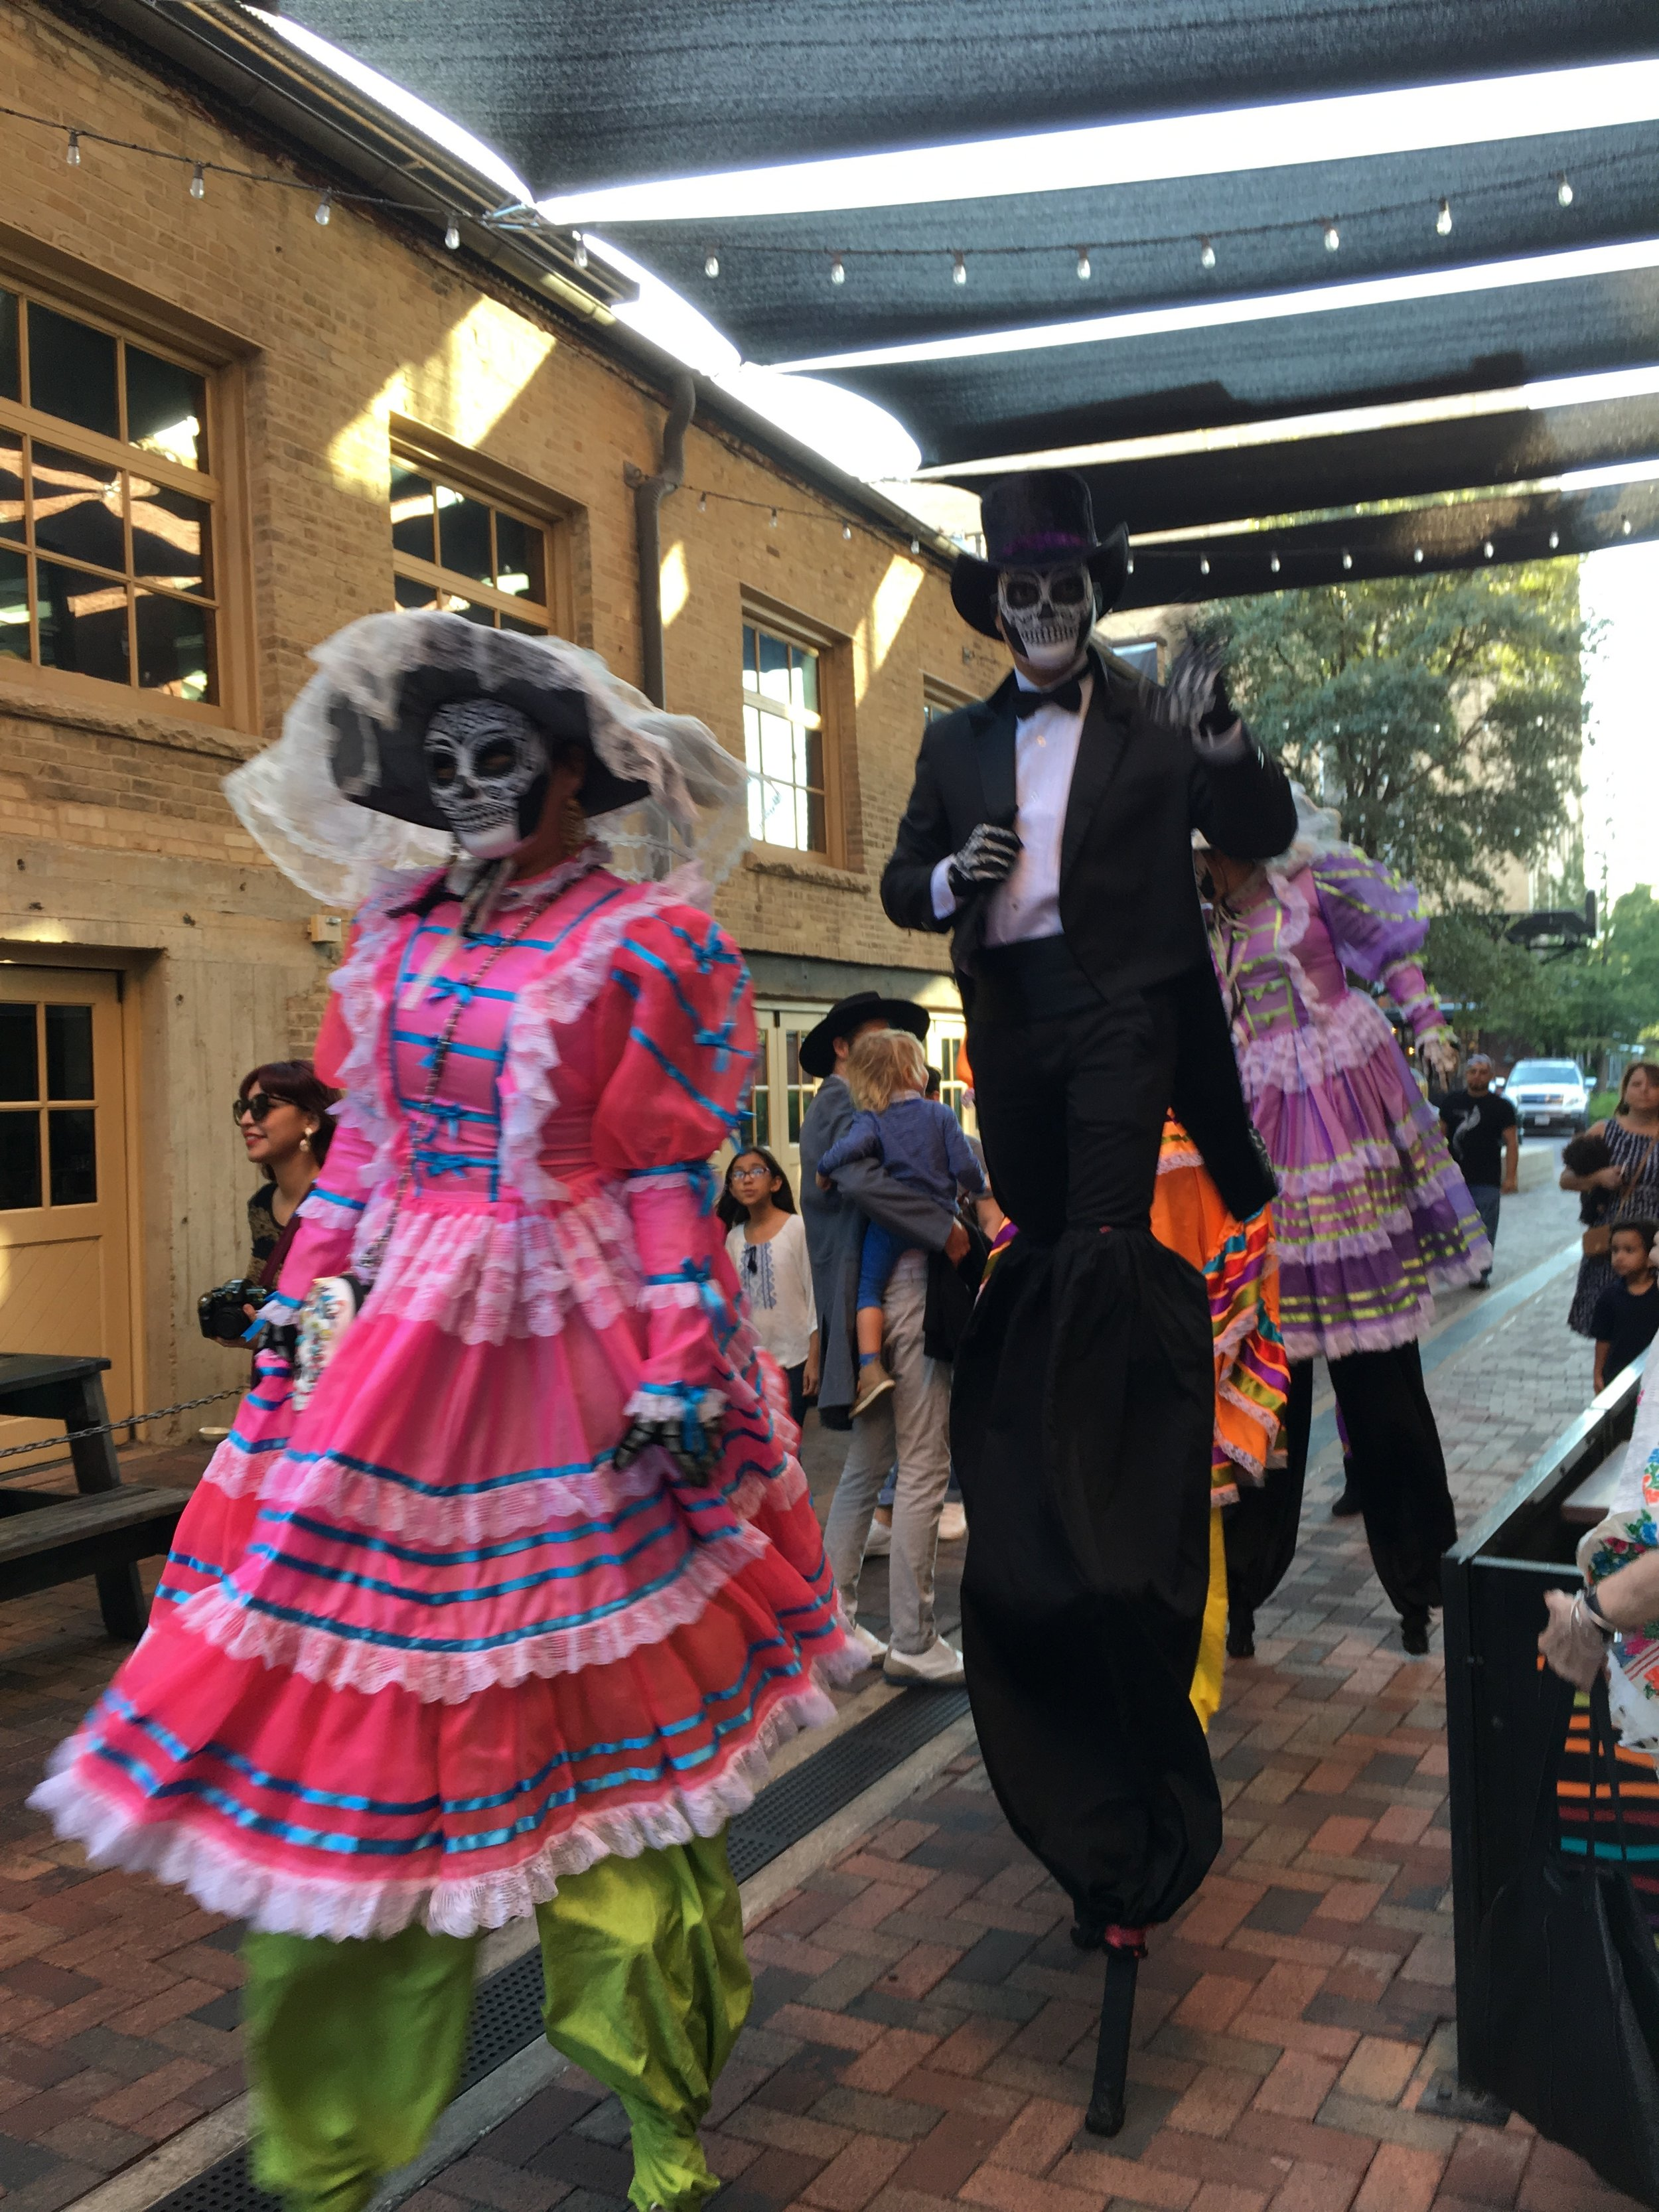 The Pearl Brewery open space celebrating Day of the Dead in November.